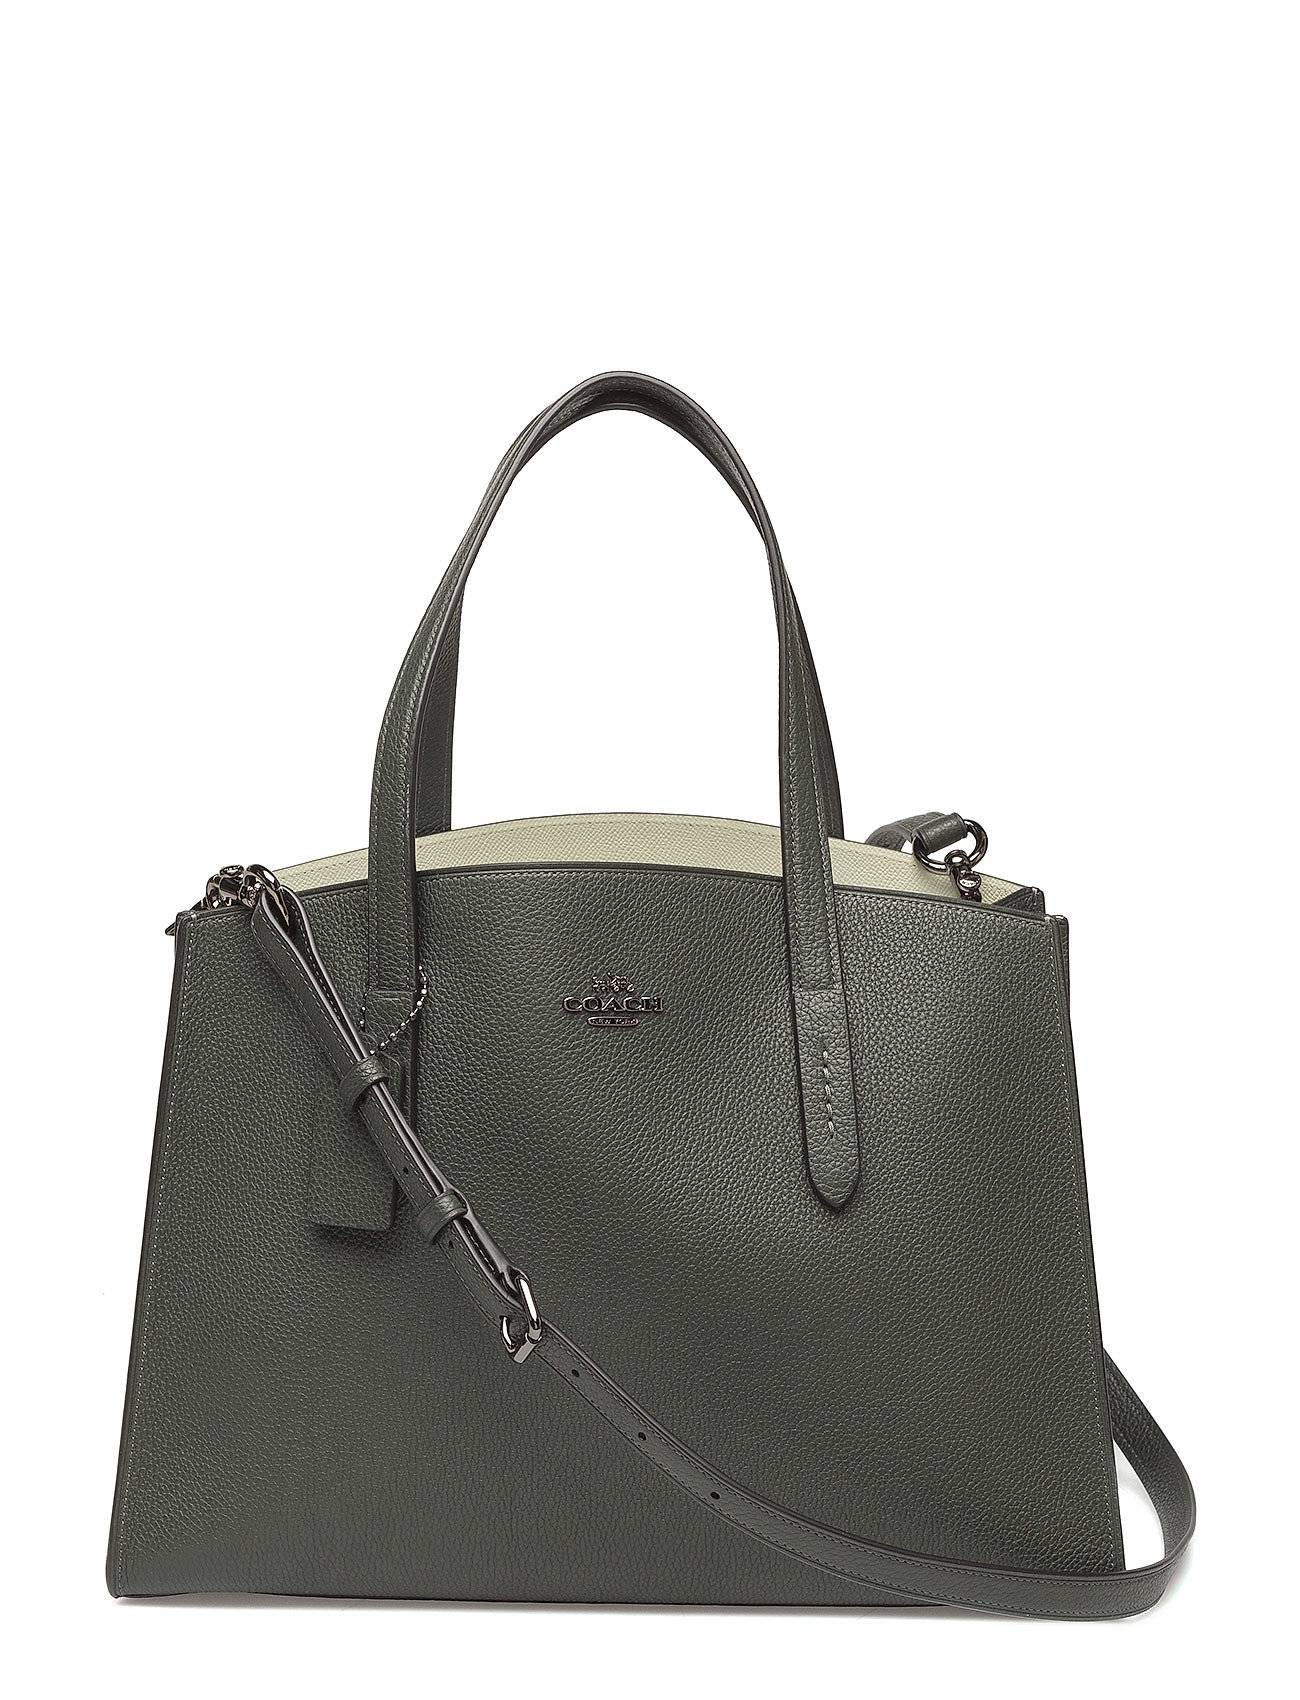 Coach Polished Pebble Leather Charlie Carryall